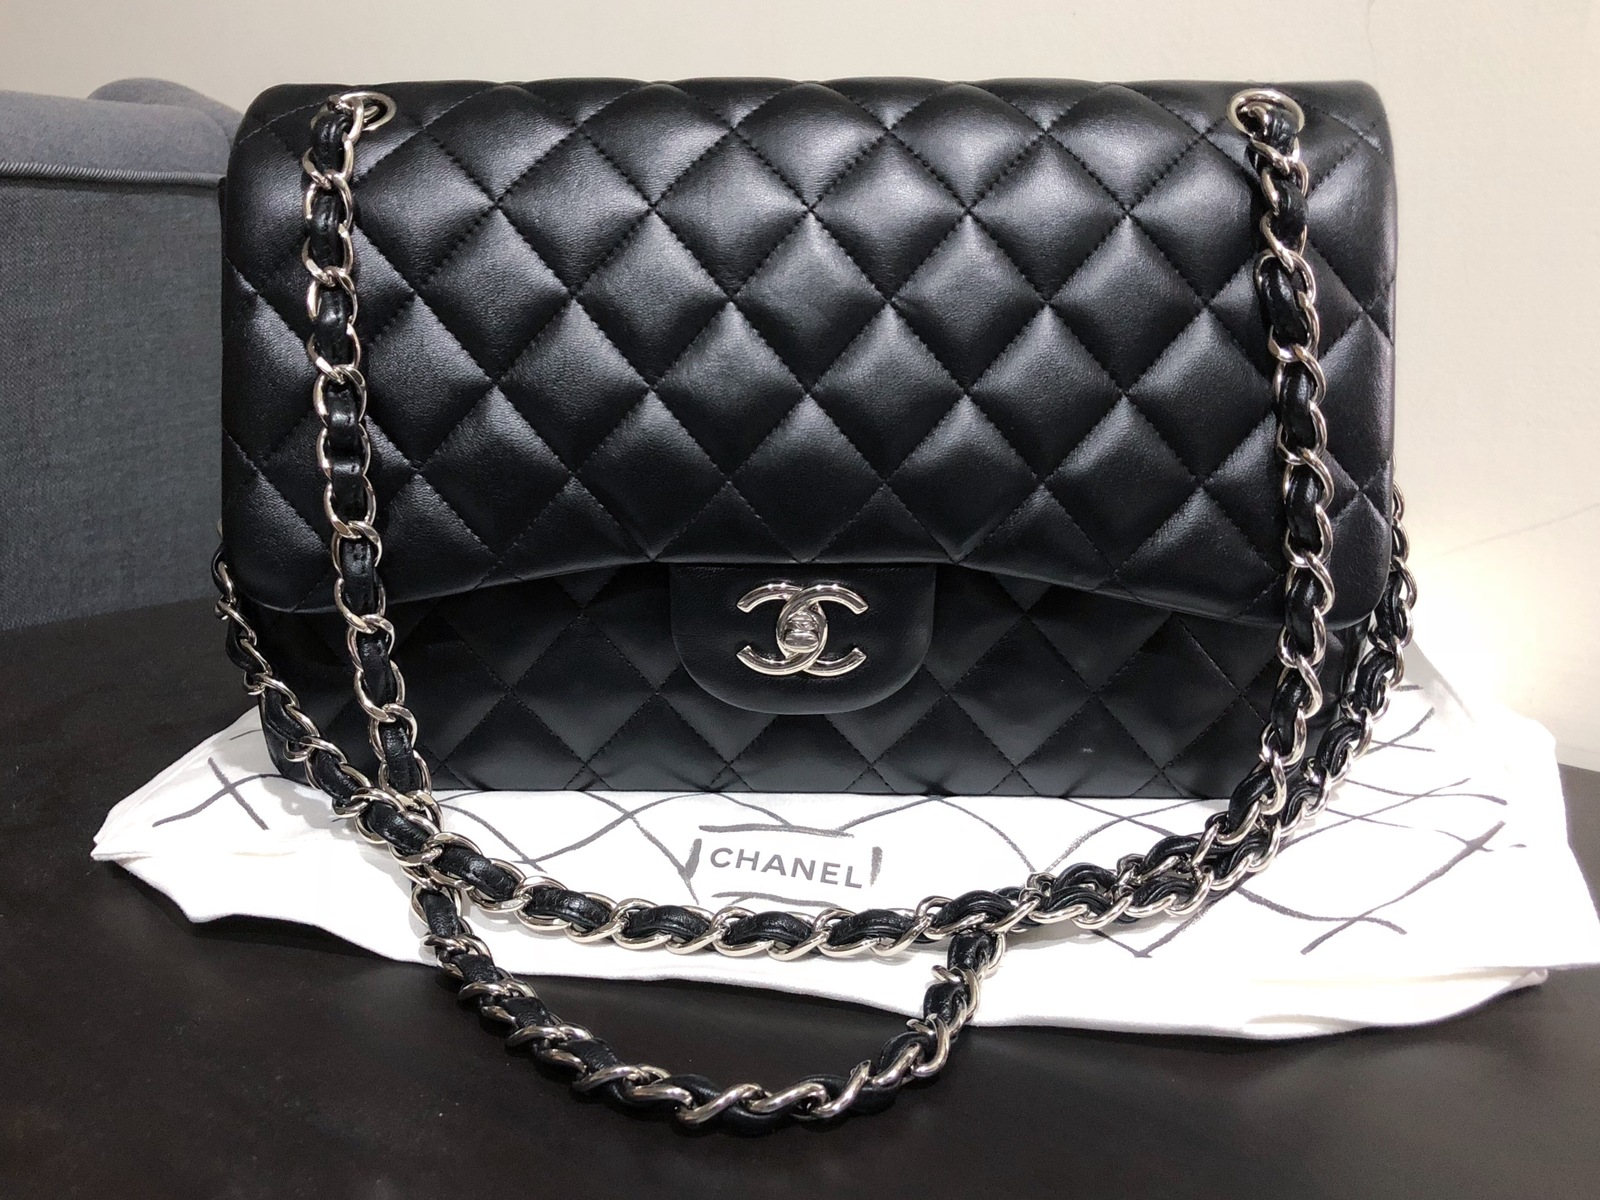 5f19f1c90e4339 100% Authentic Chanel BLACK QUILTED LAMBSKIN JUMBO CLASSIC DOUBLE ...